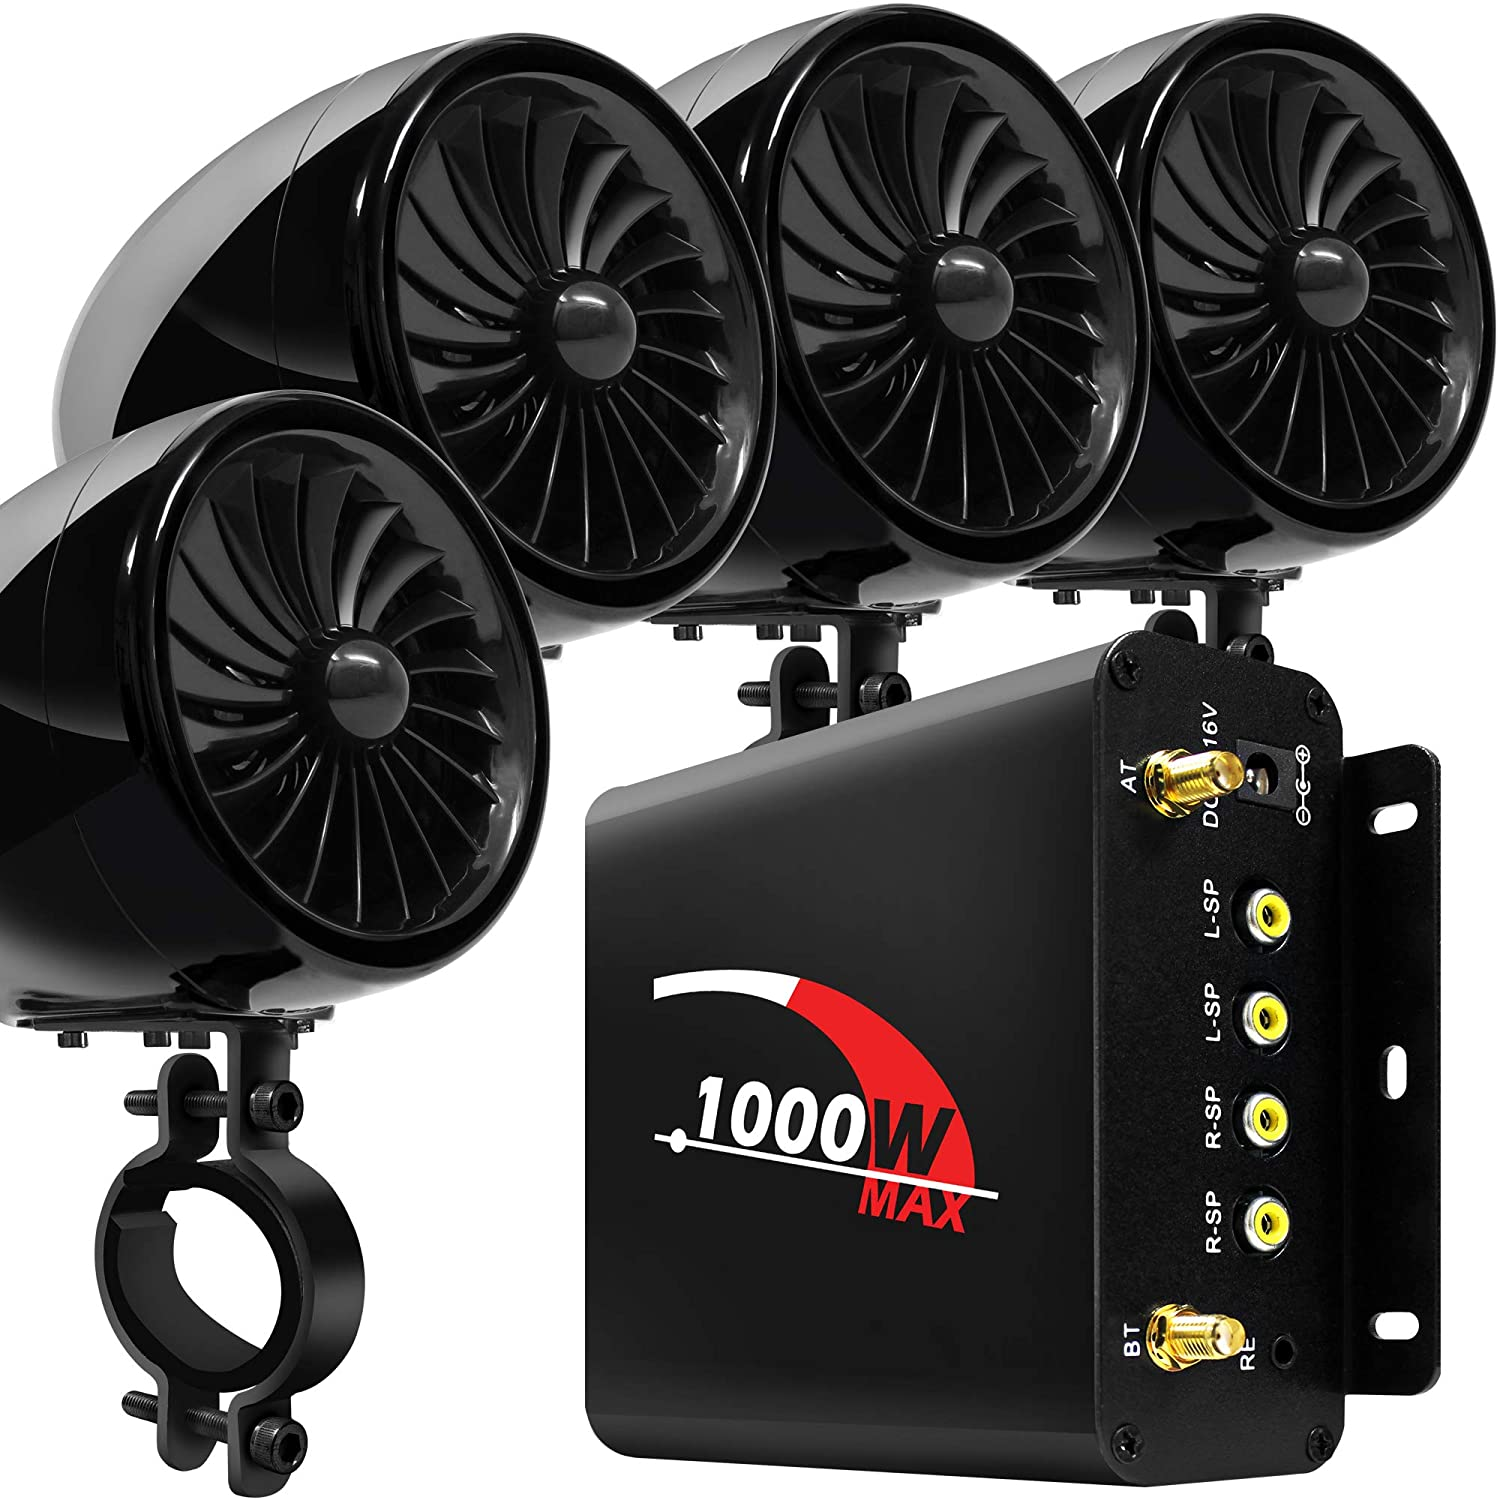 3. GoHawk AN4-QX 4.5 in. 1200W All-in-One 4-Channel Bluetooth Amplifier Motorcycle Stereo Speakers (Black)